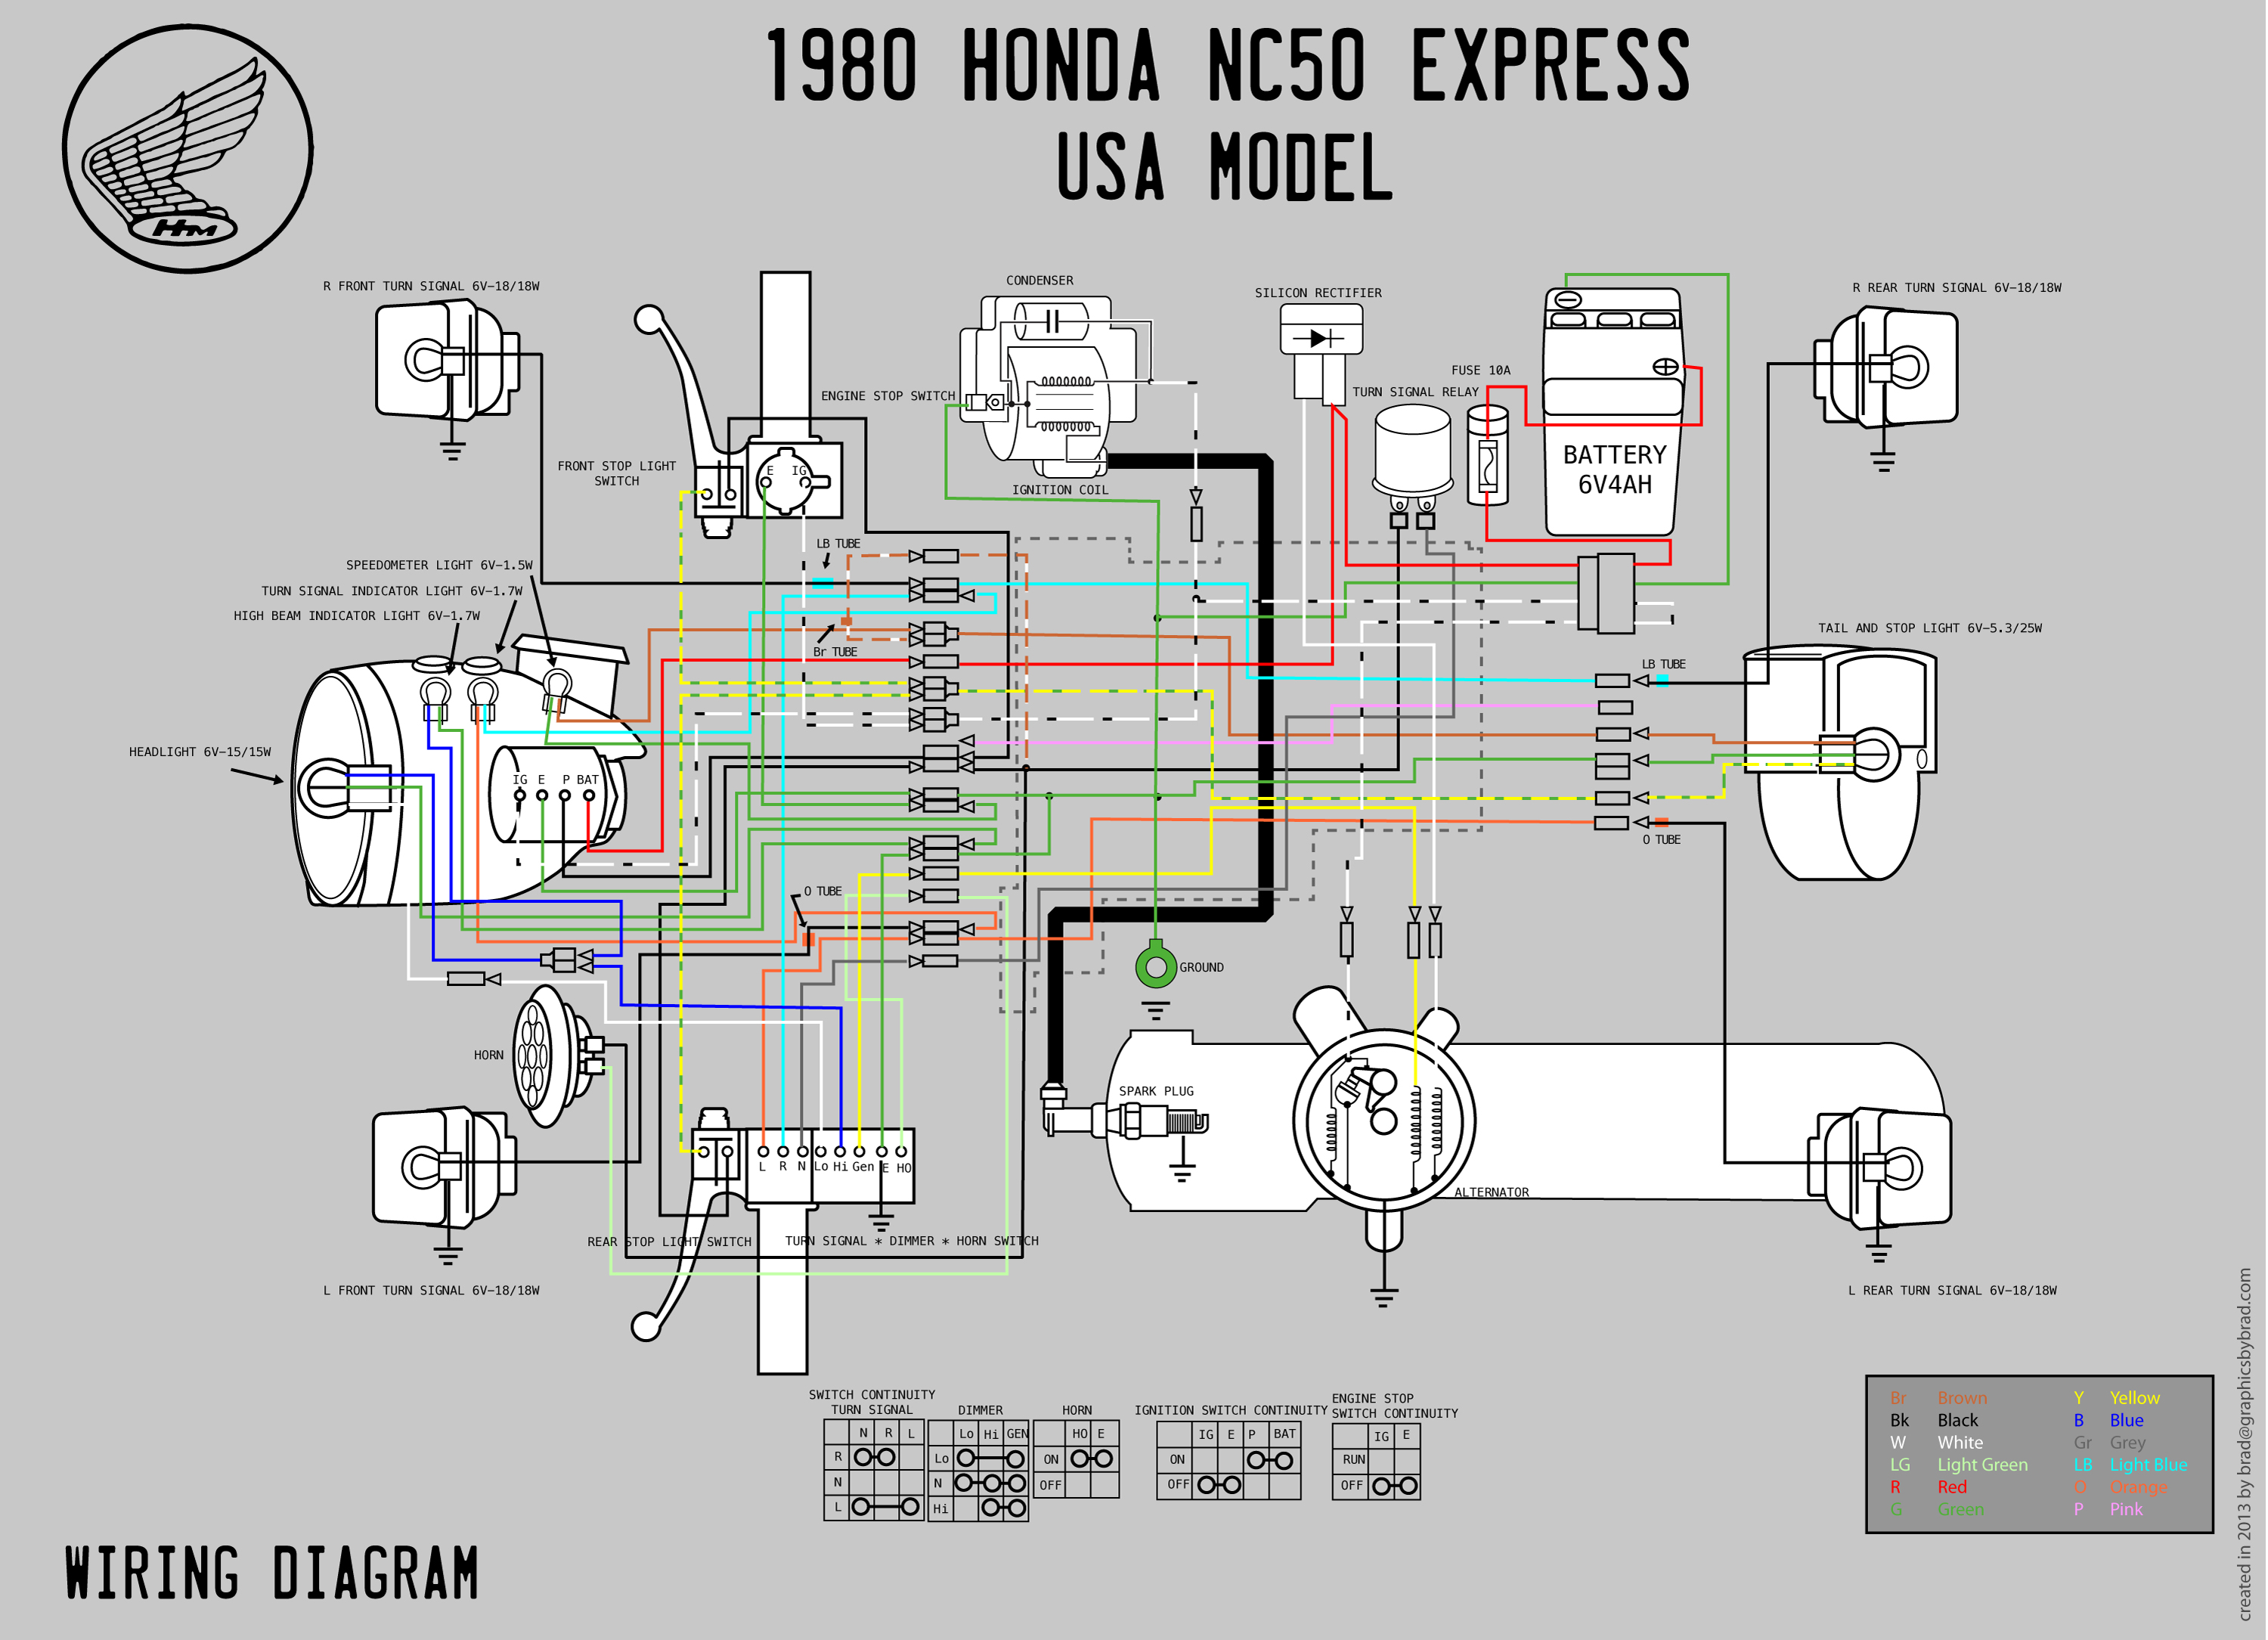 2010 Honda Goldwing Wiring Diagrams | technical wiring diagram on honda goldwing alternator, honda goldwing lighting, honda goldwing starter, honda goldwing crankshaft, honda goldwing parts, nissan wiring diagram, honda goldwing tractor, honda goldwing stereo upgrade, honda goldwing engine, honda goldwing dimensions, kawasaki wiring diagram, honda goldwing troubleshooting, honda goldwing clock, honda goldwing radiator, honda goldwing exhaust, honda goldwing gl1200, honda goldwing controls, honda goldwing transmission problems, honda goldwing fuel system, honda goldwing regulator,